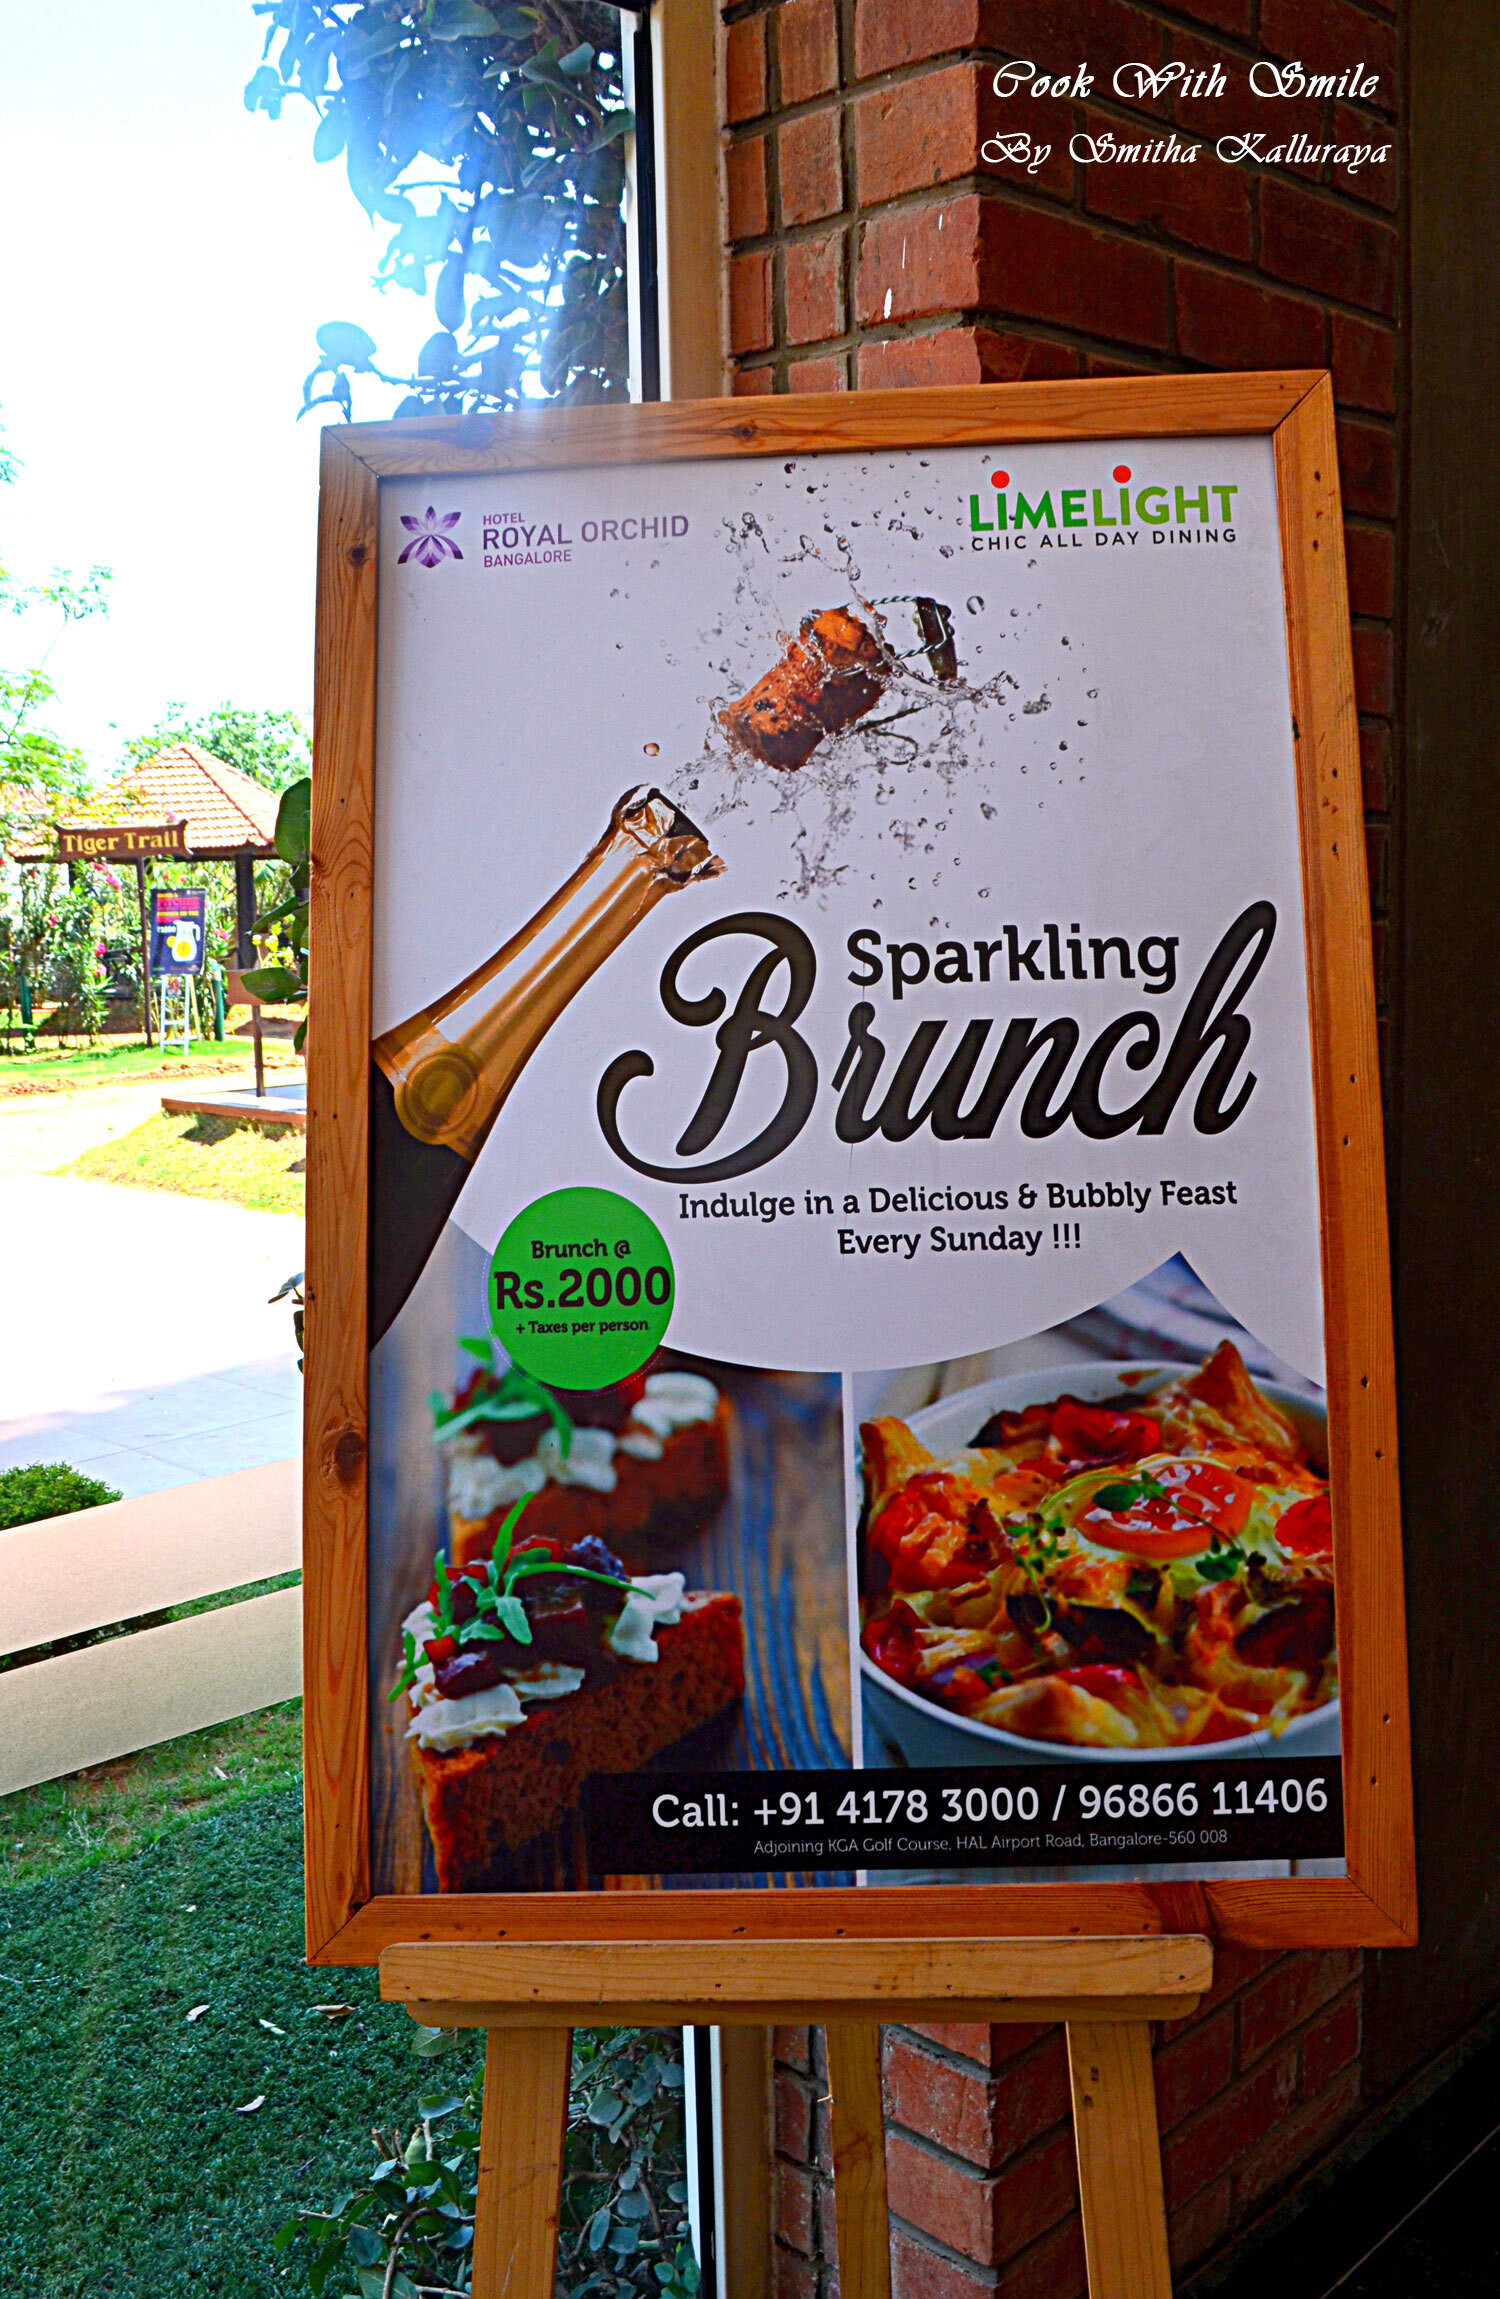 SUNDAY BRUNCH AT LIMELIGHT , ROYAL ORCHIDS BANGALORE